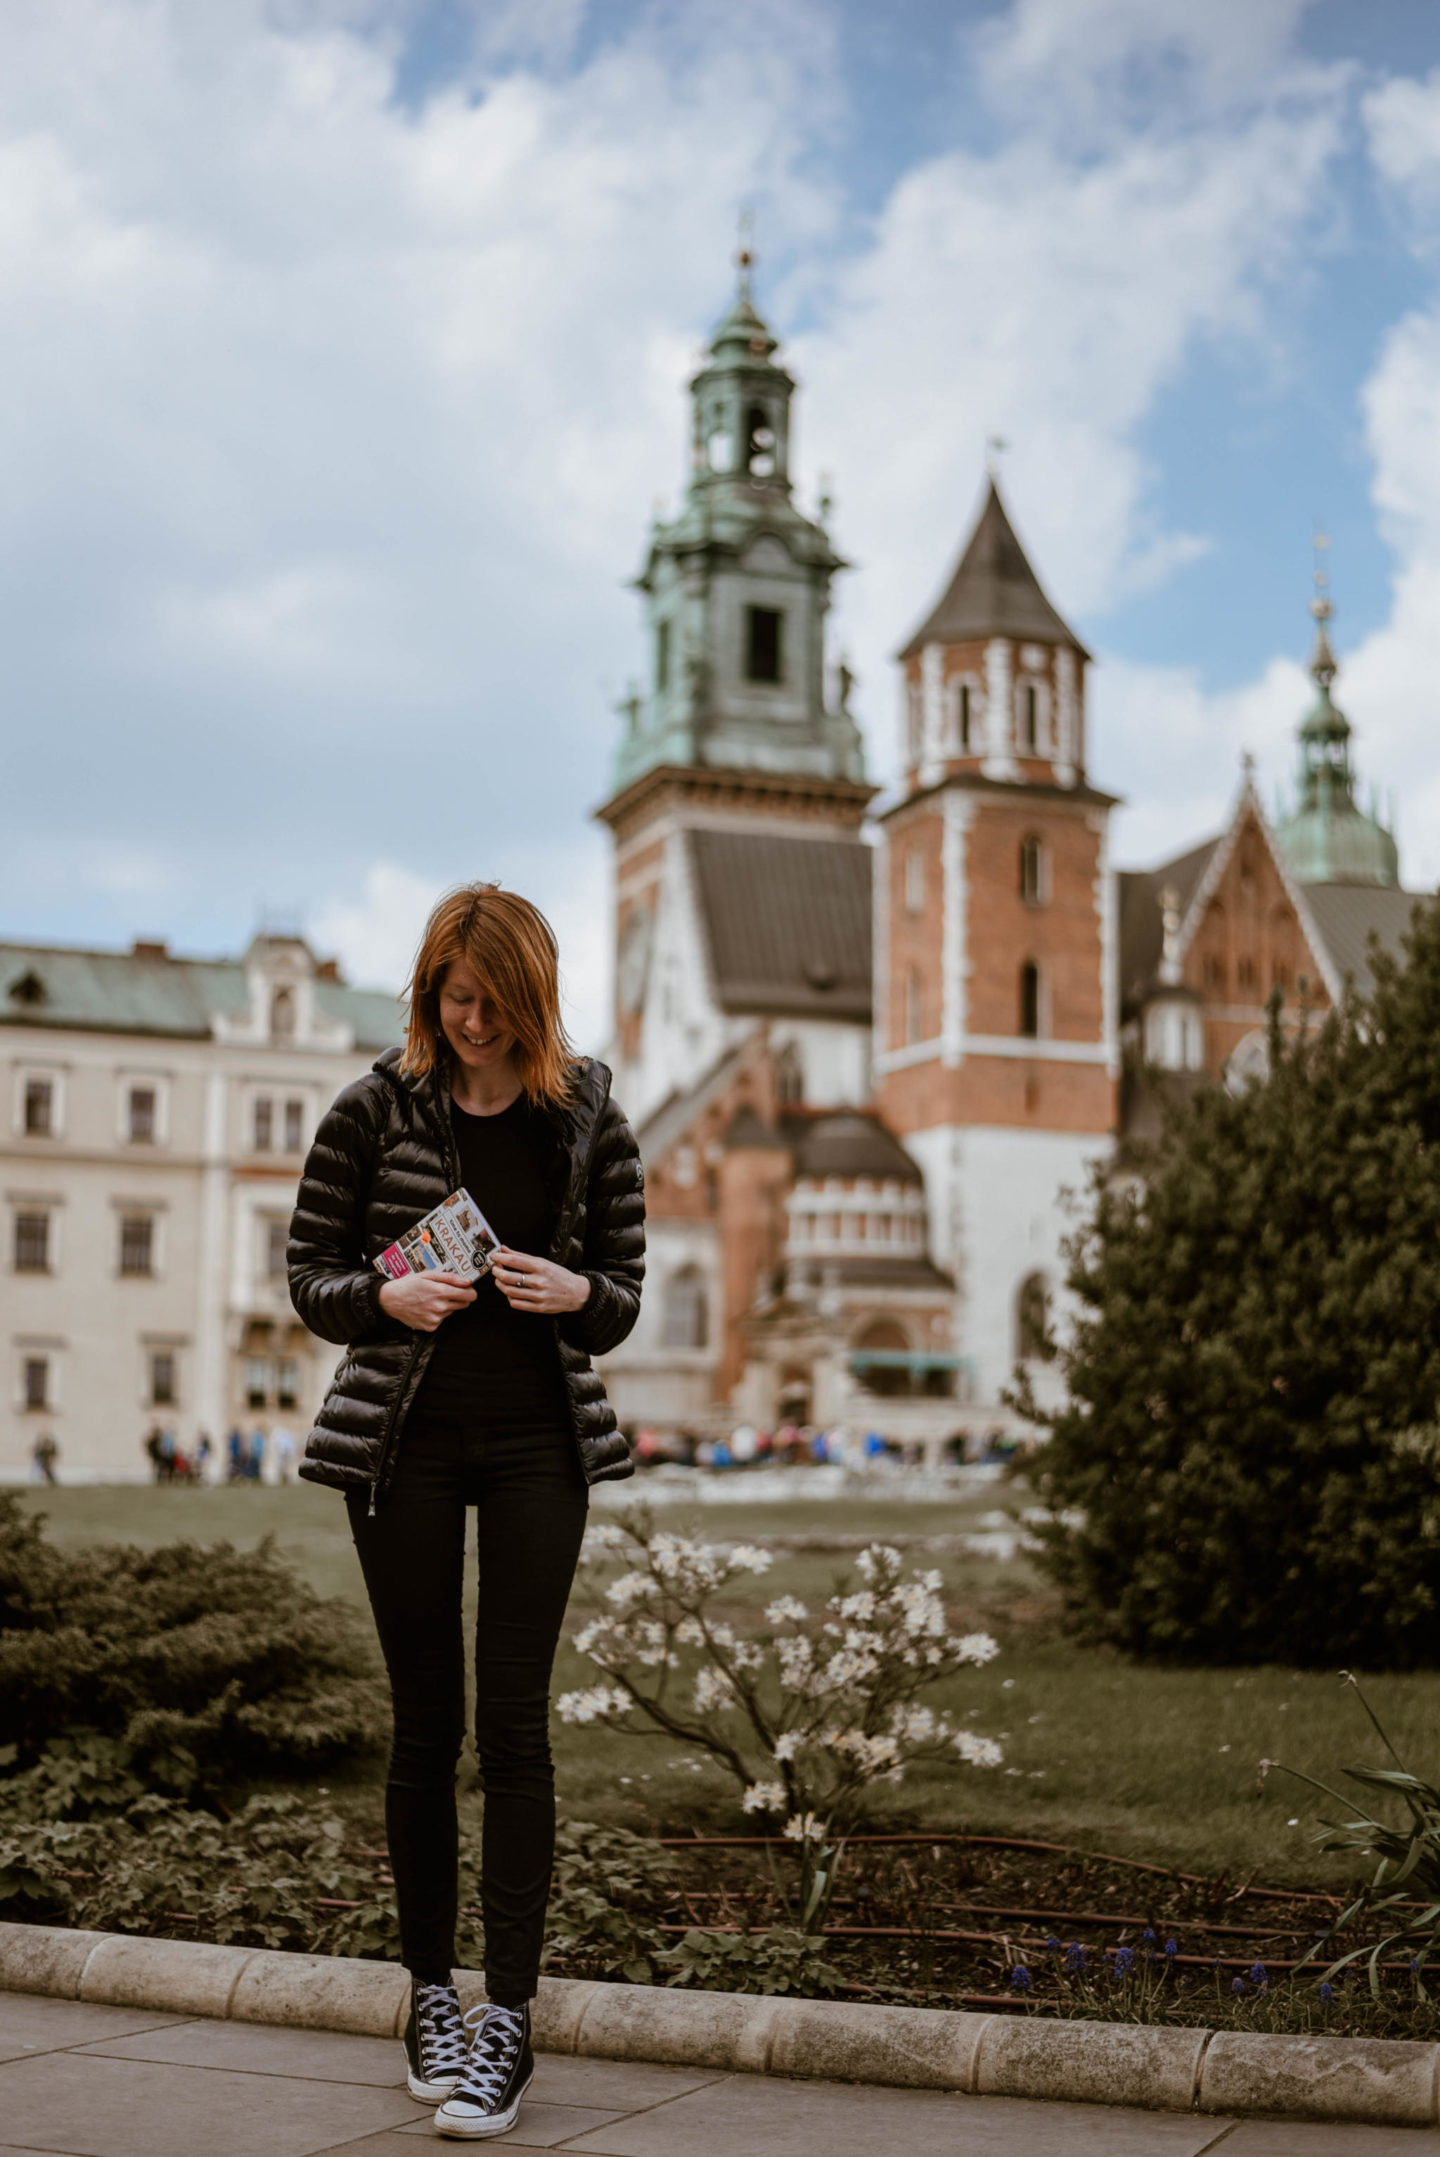 Girl in front of Wawel Royal Palace in Krakow